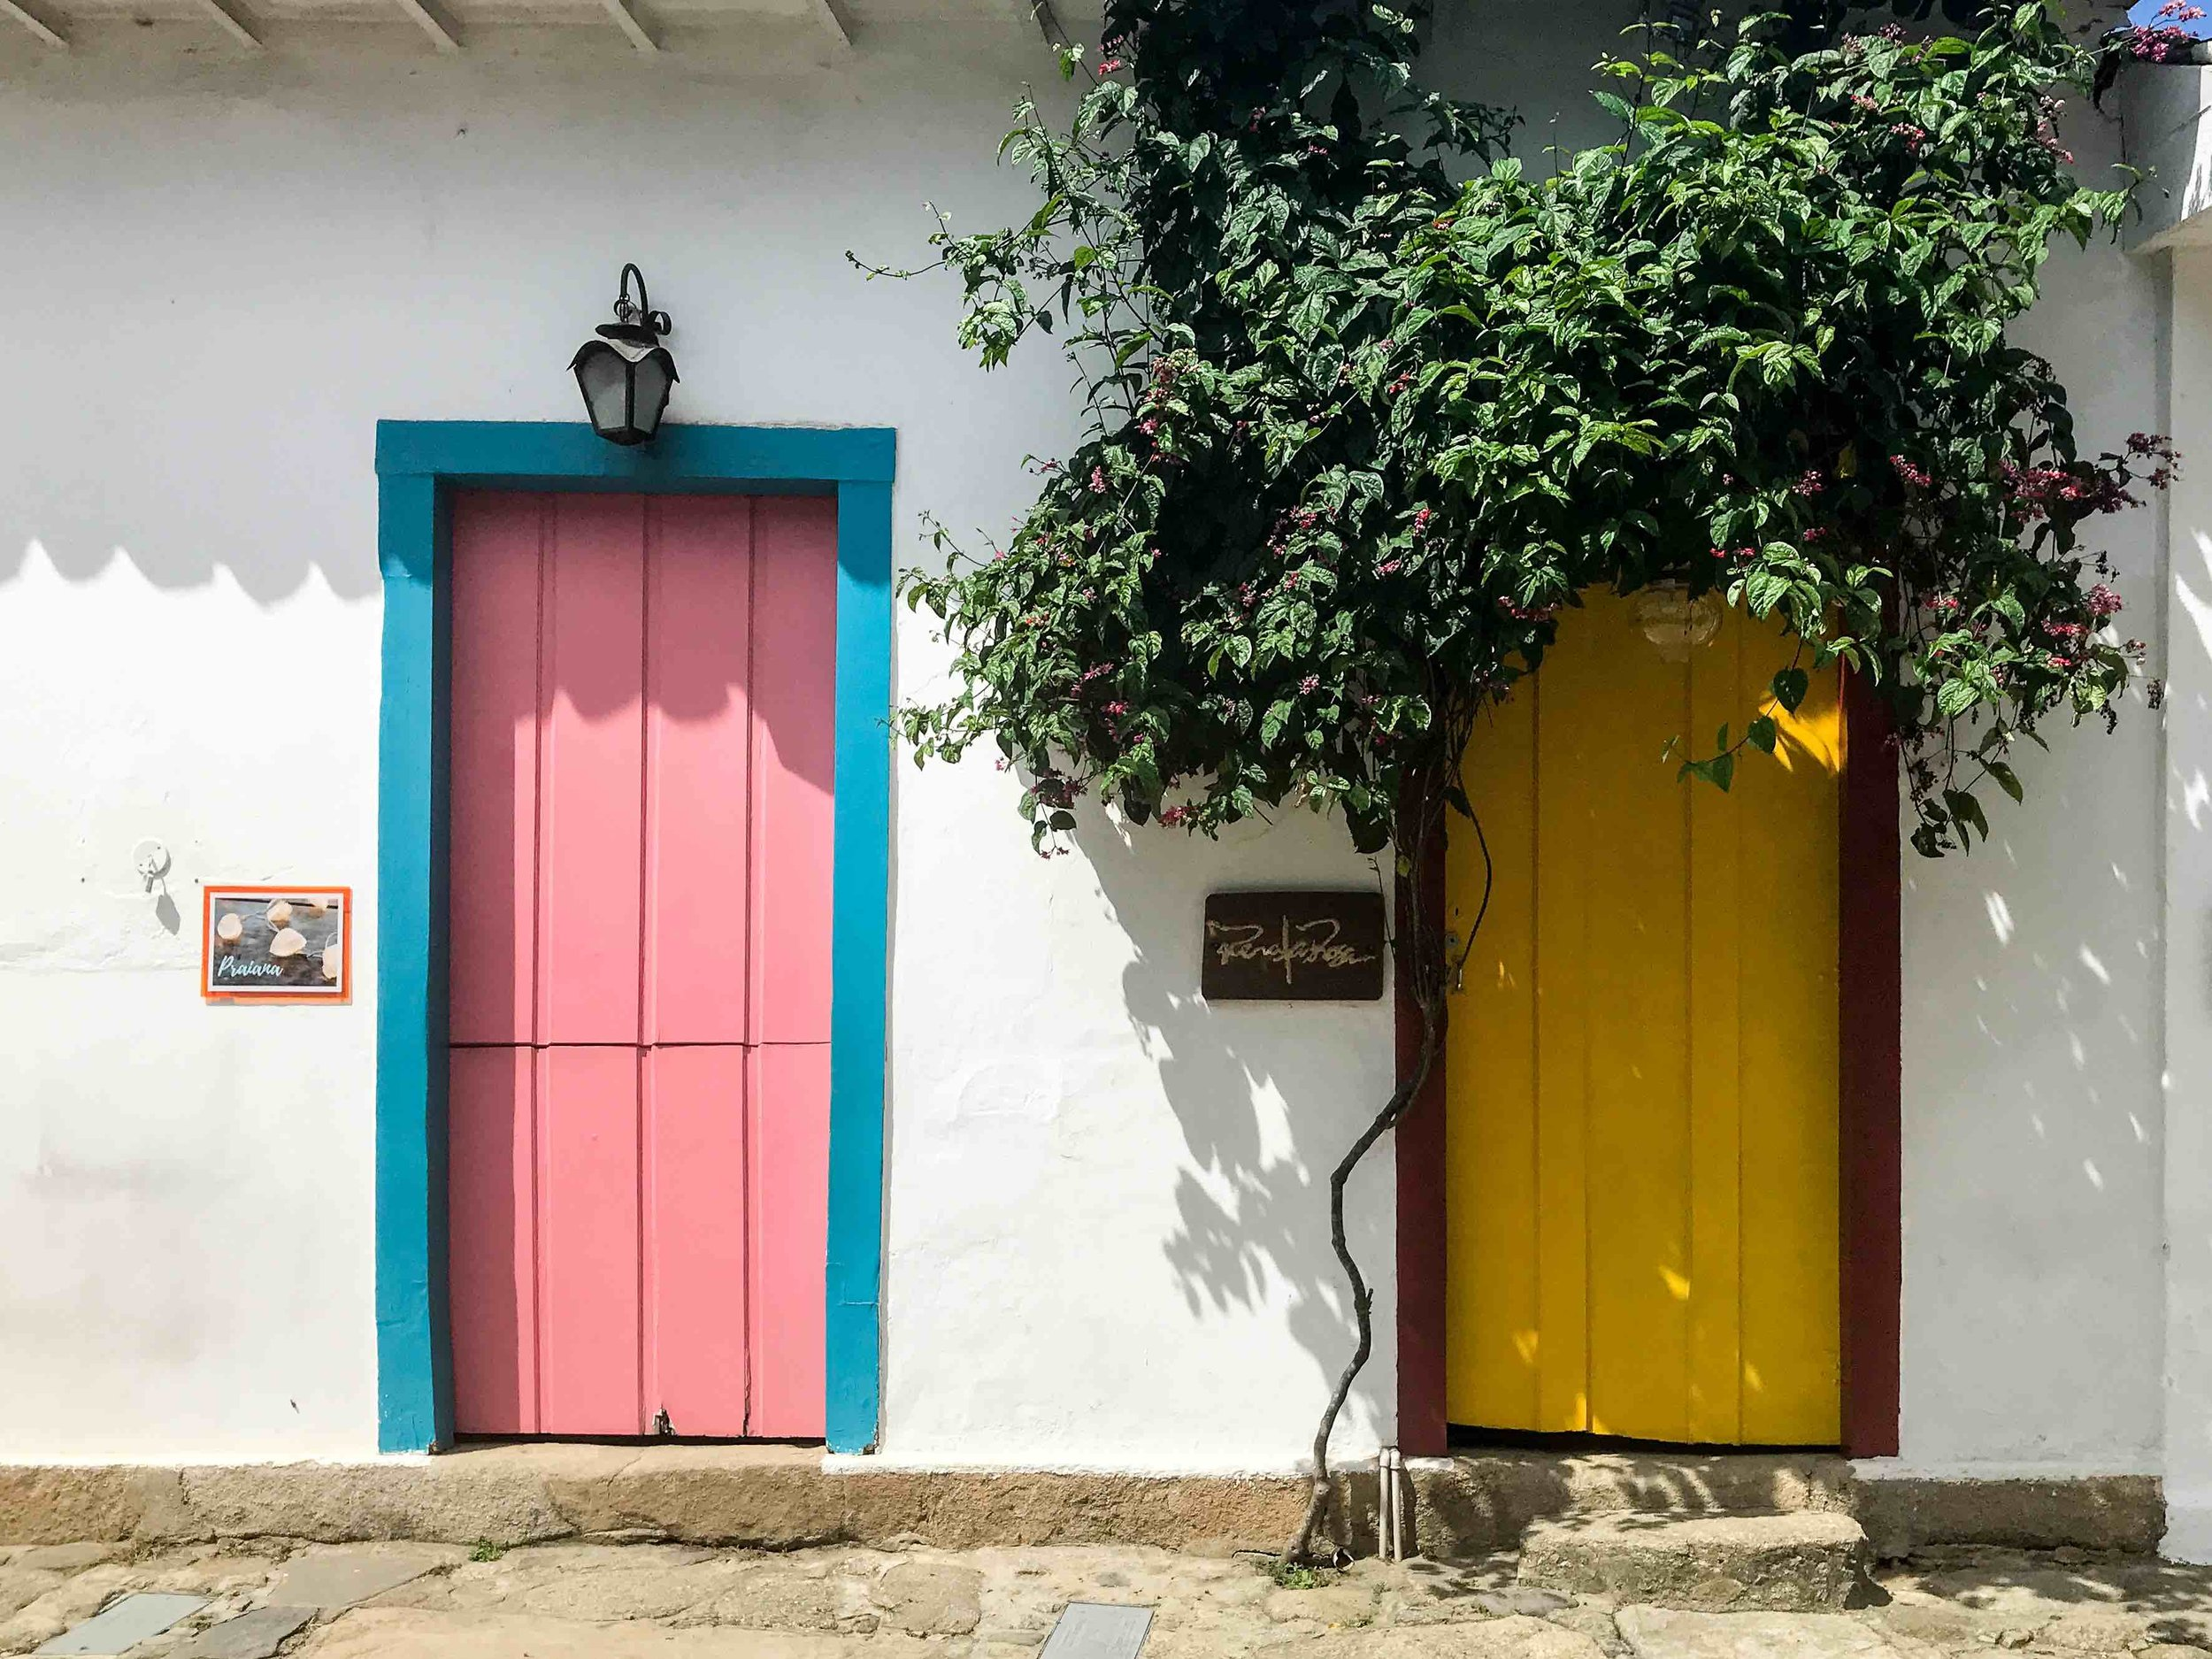 The vibrant streets of Paraty